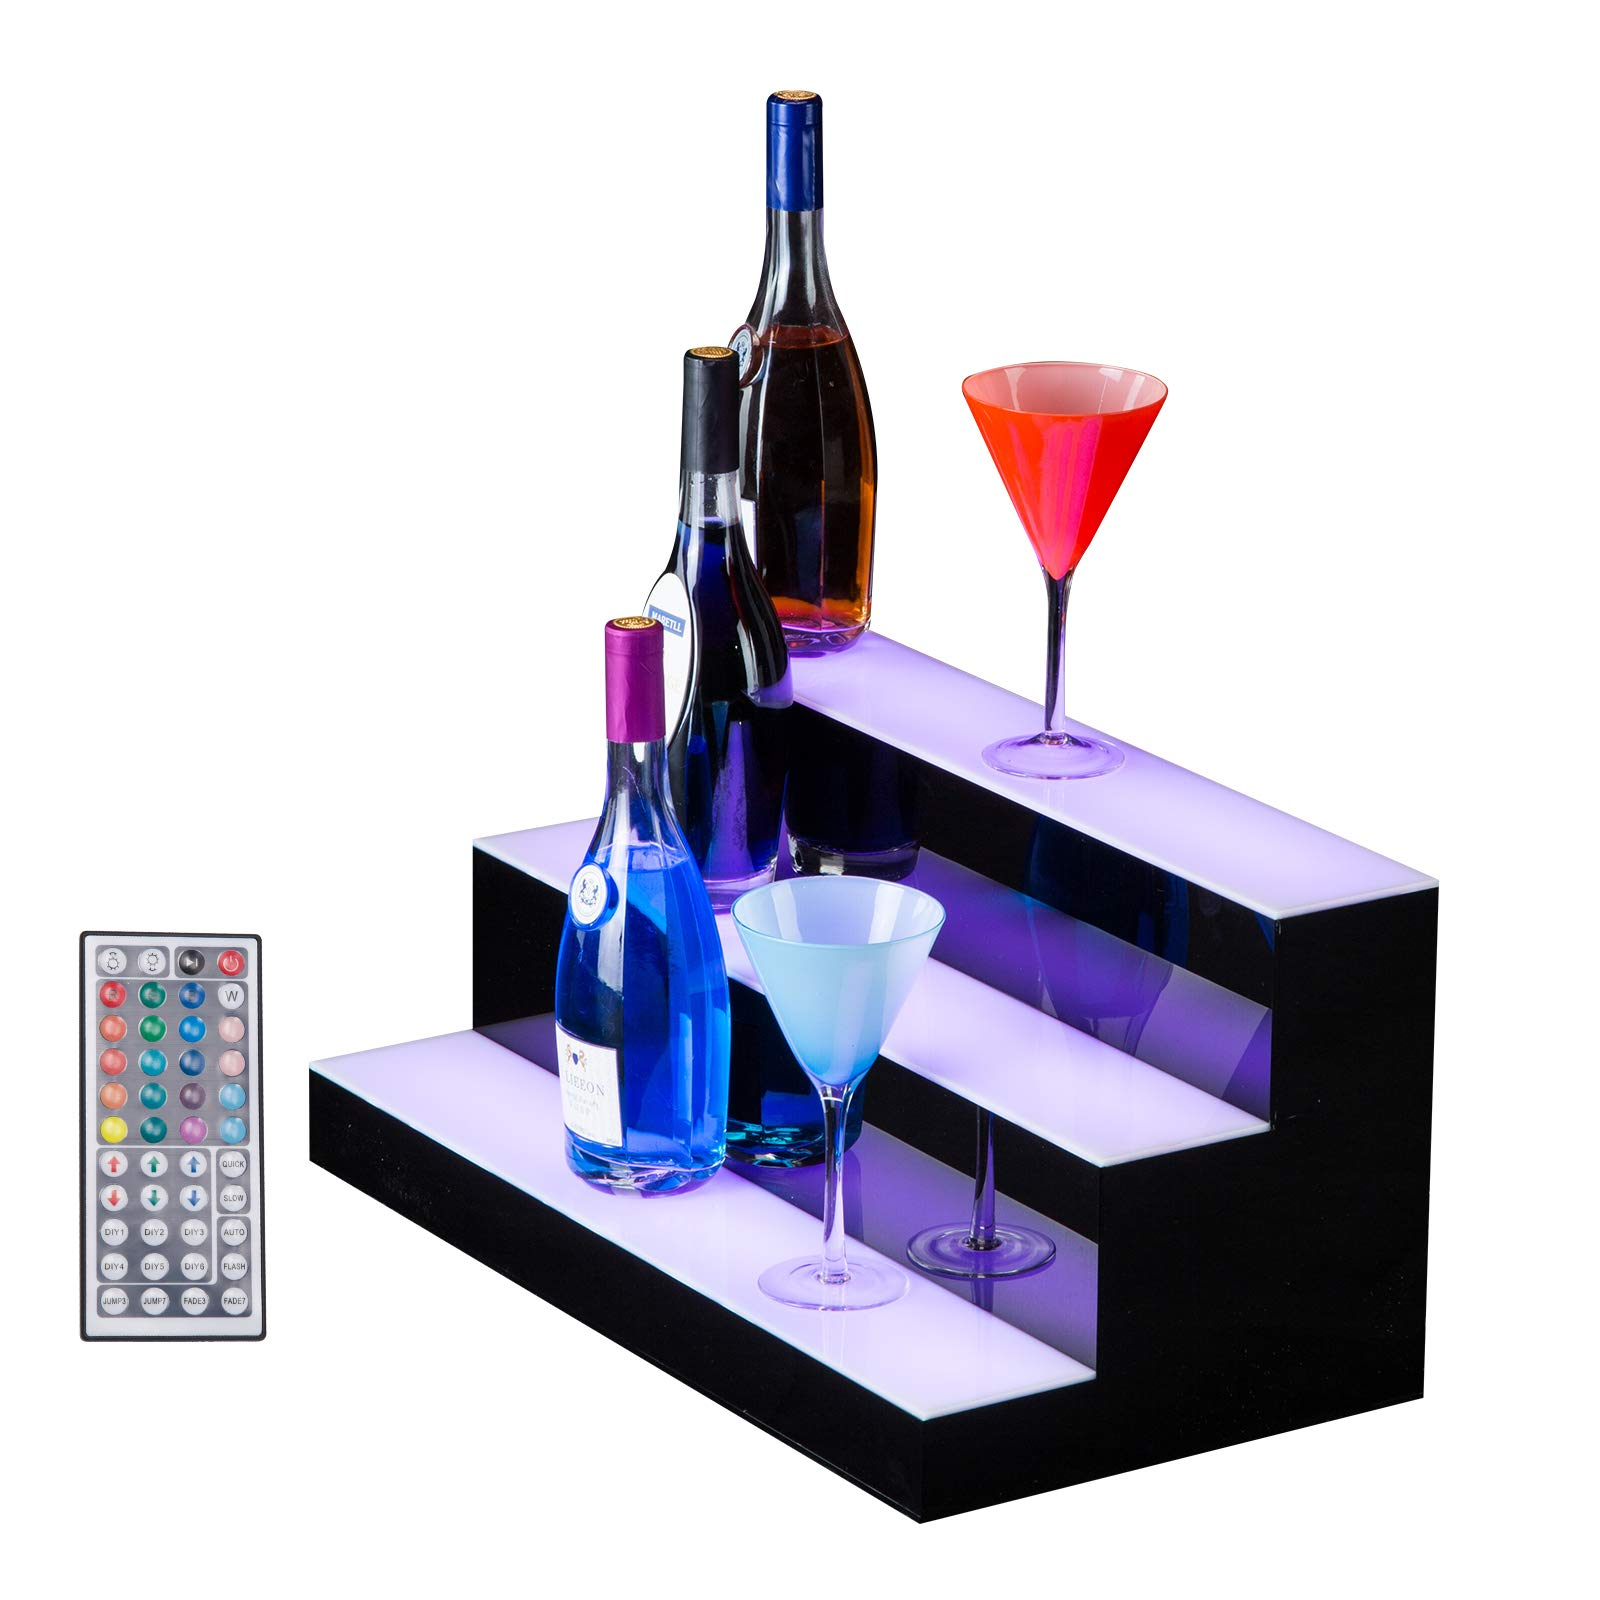 SUNCOO 24 Inch 3 Step LED Lighted Liquor Bottle Display Illuminated Bottle Shelf 3 Tier Home Bar Drinks Lighting Shelves with Remote Control by SUNCOO